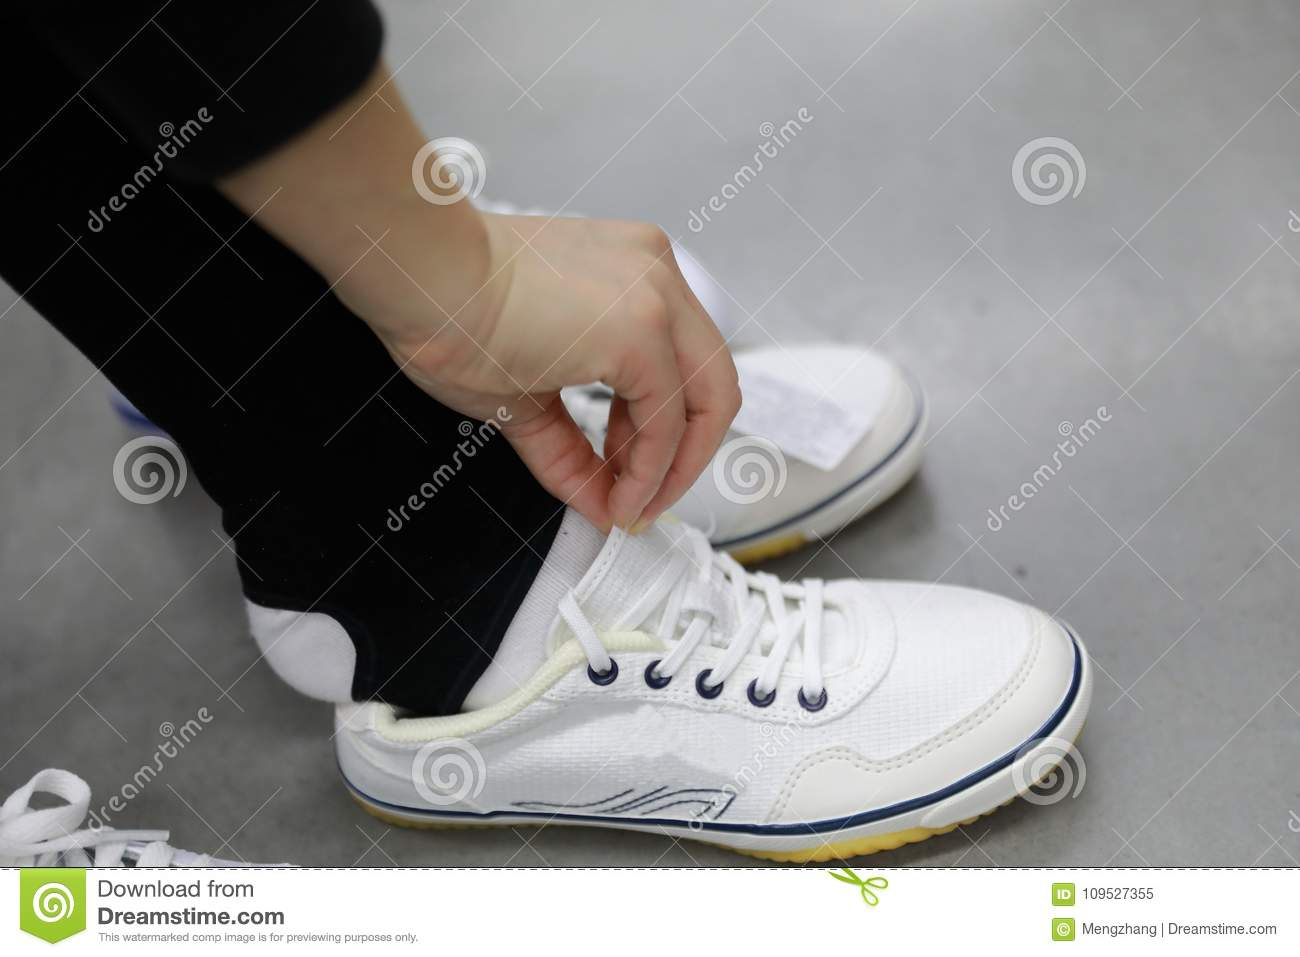 c402bf101a7 Trying New Shoes At Shanghai Decathlon Shop Stock Image - Image of ...